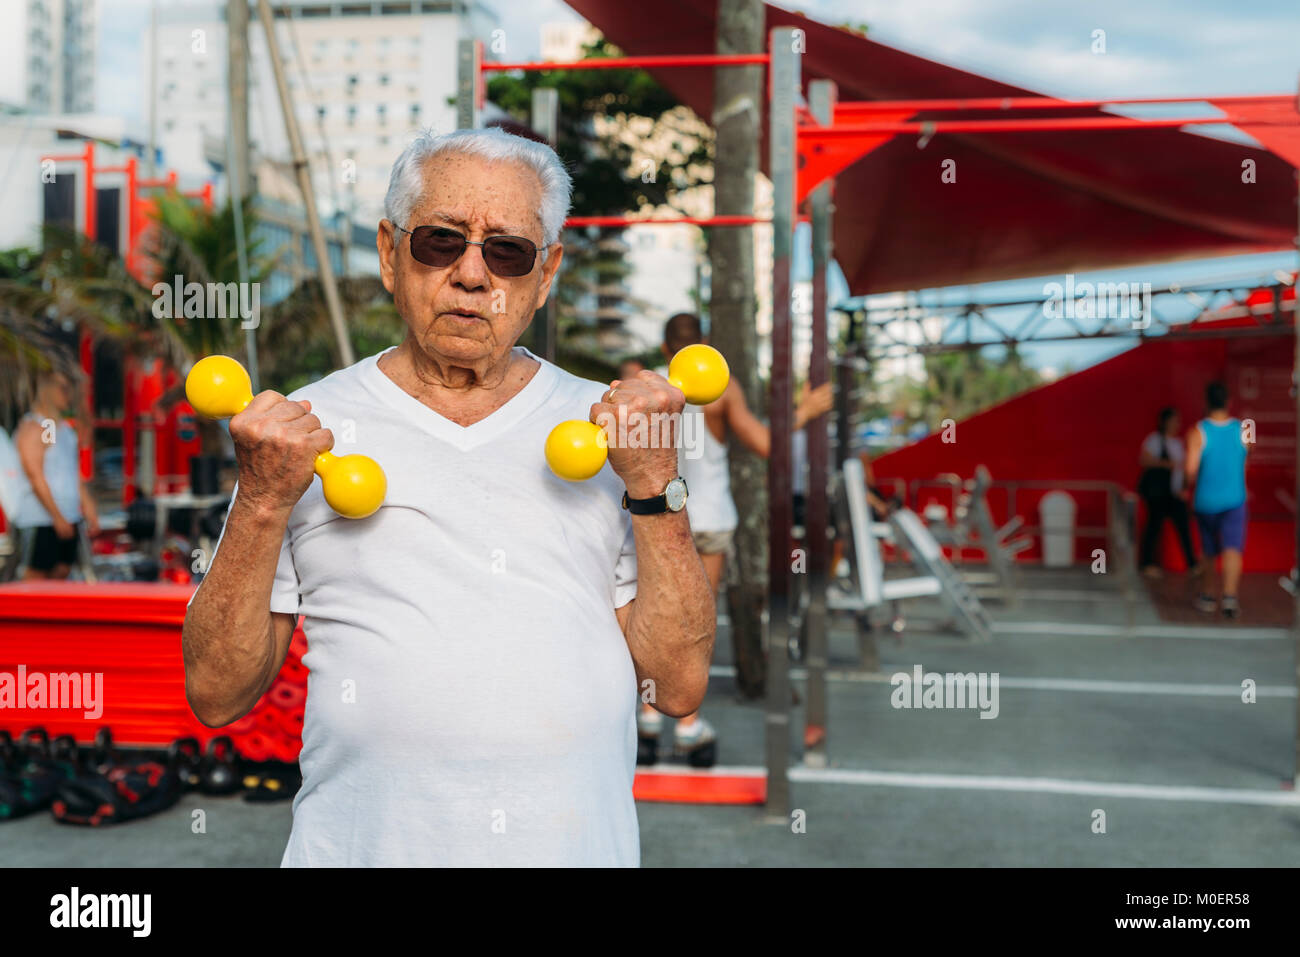 Model Released: Older man (80-89) exercising using dumbbells at public gym in Ipanema, Rio de Janeiro, Brazil Stock Photo